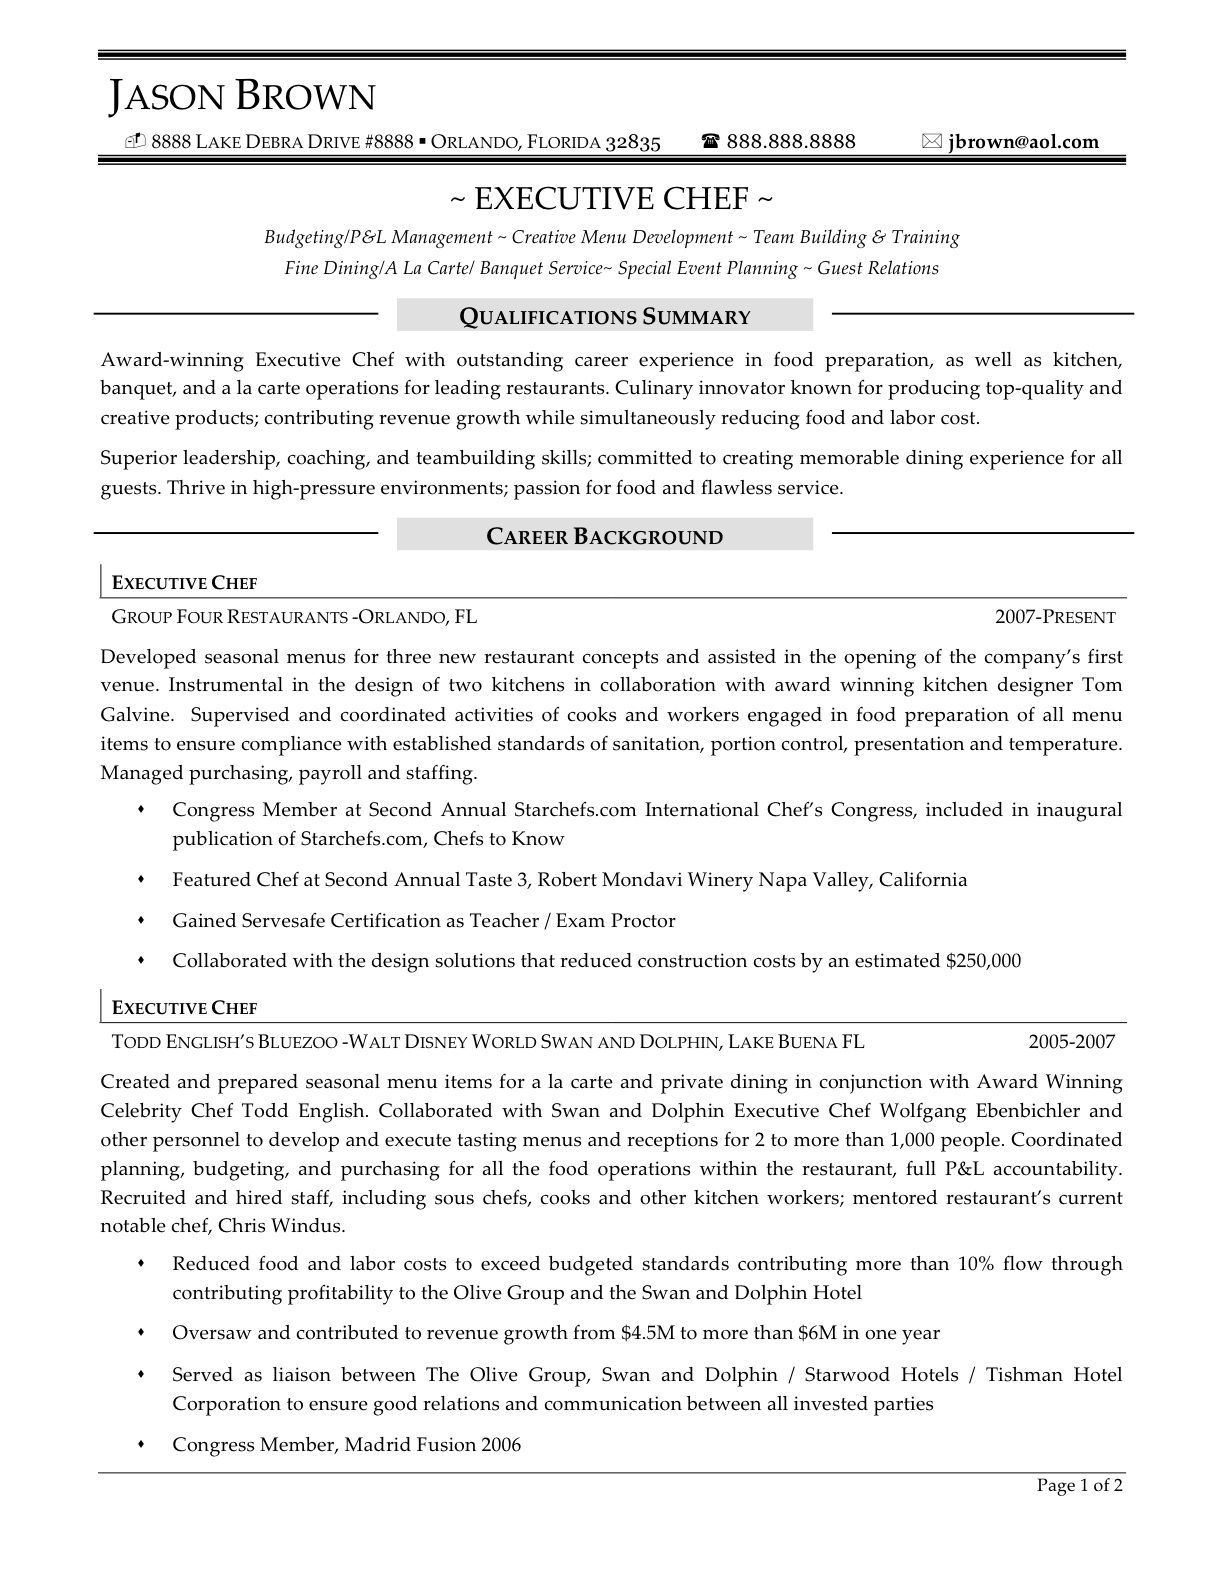 Executive Chef Resume (Sample) | resume examples | Pinterest ...